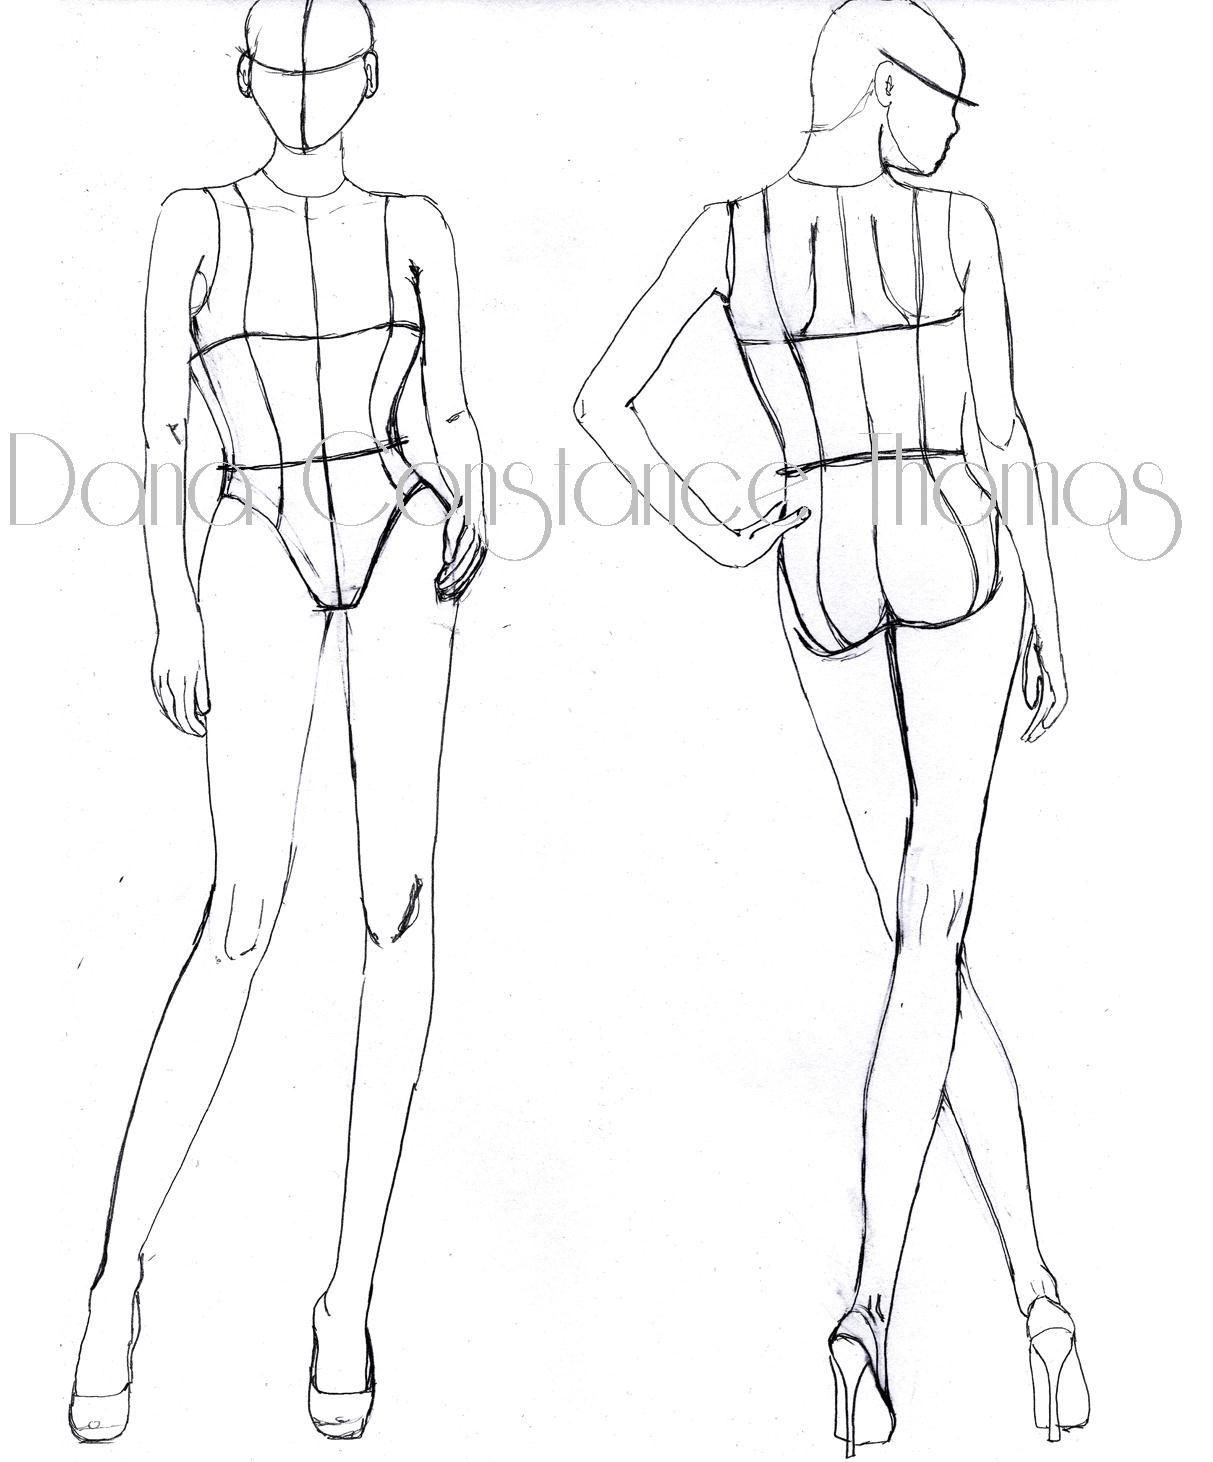 Croquis Templates Dibujar Pinteres Free Download Fashion Design Templates More Here Http Www Free Croquis Female Google Search Design Pinterest Free Croquis Templates Unit 3 South African Food Pinterest Croquis Female Front